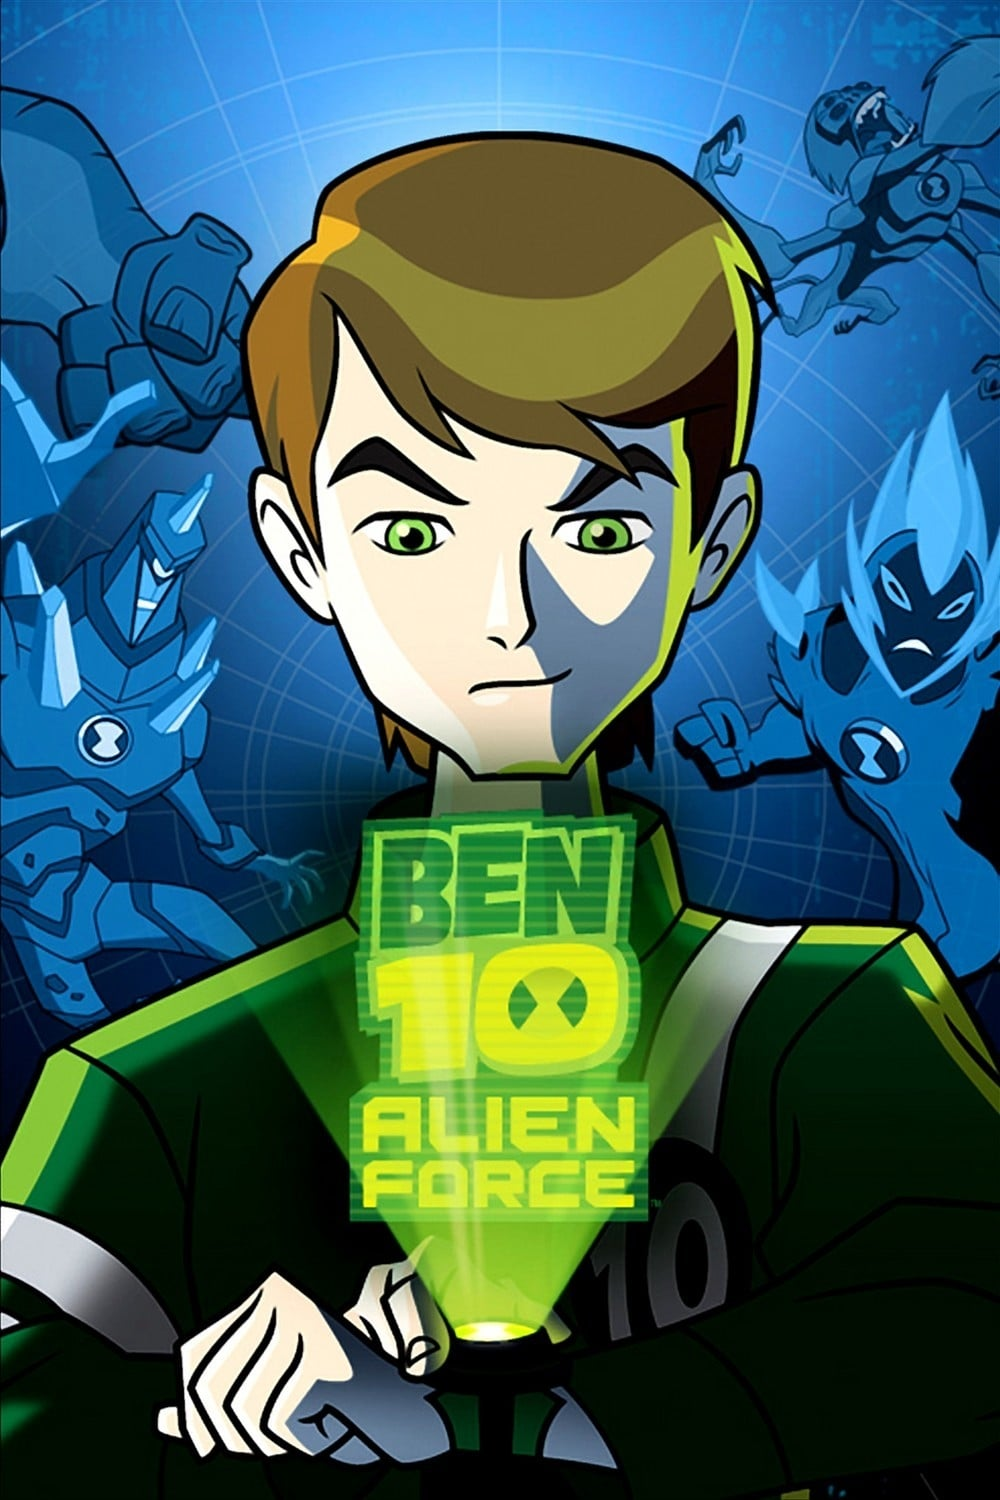 Ben 10: Alien Force (2008)